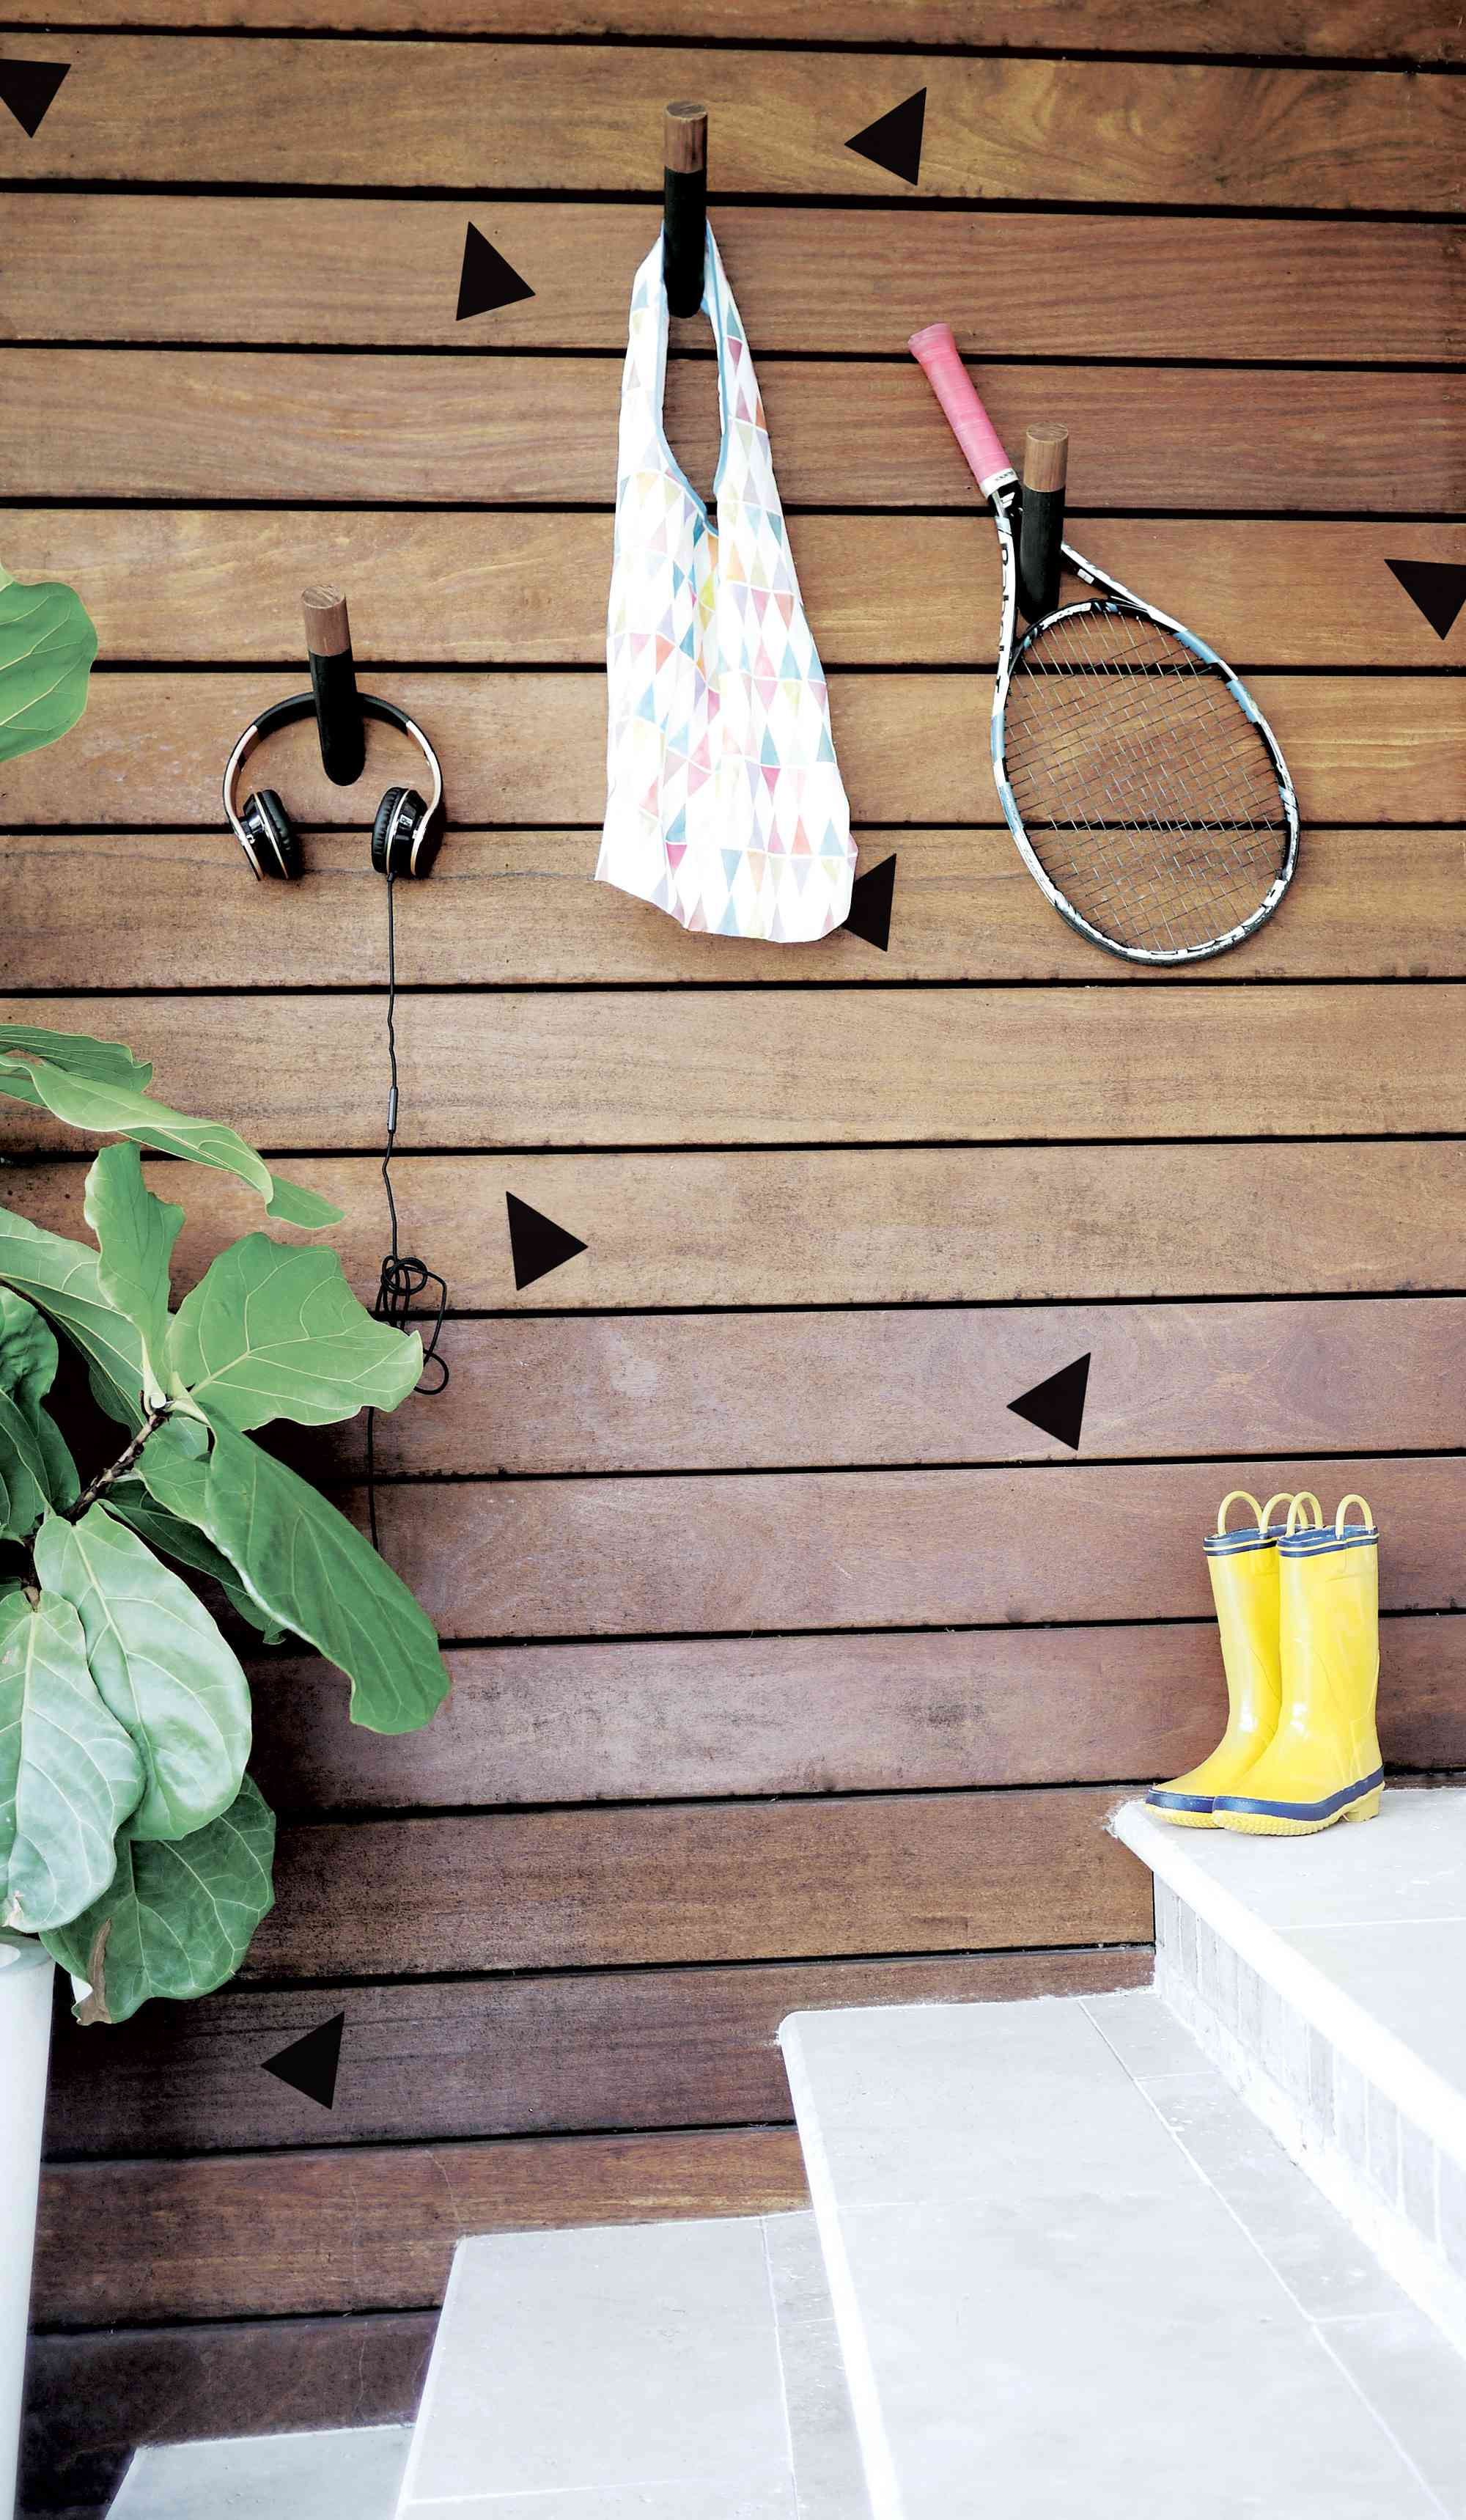 A bag, headphones and a tennis racket hanging on wall hooks on a wood wall.